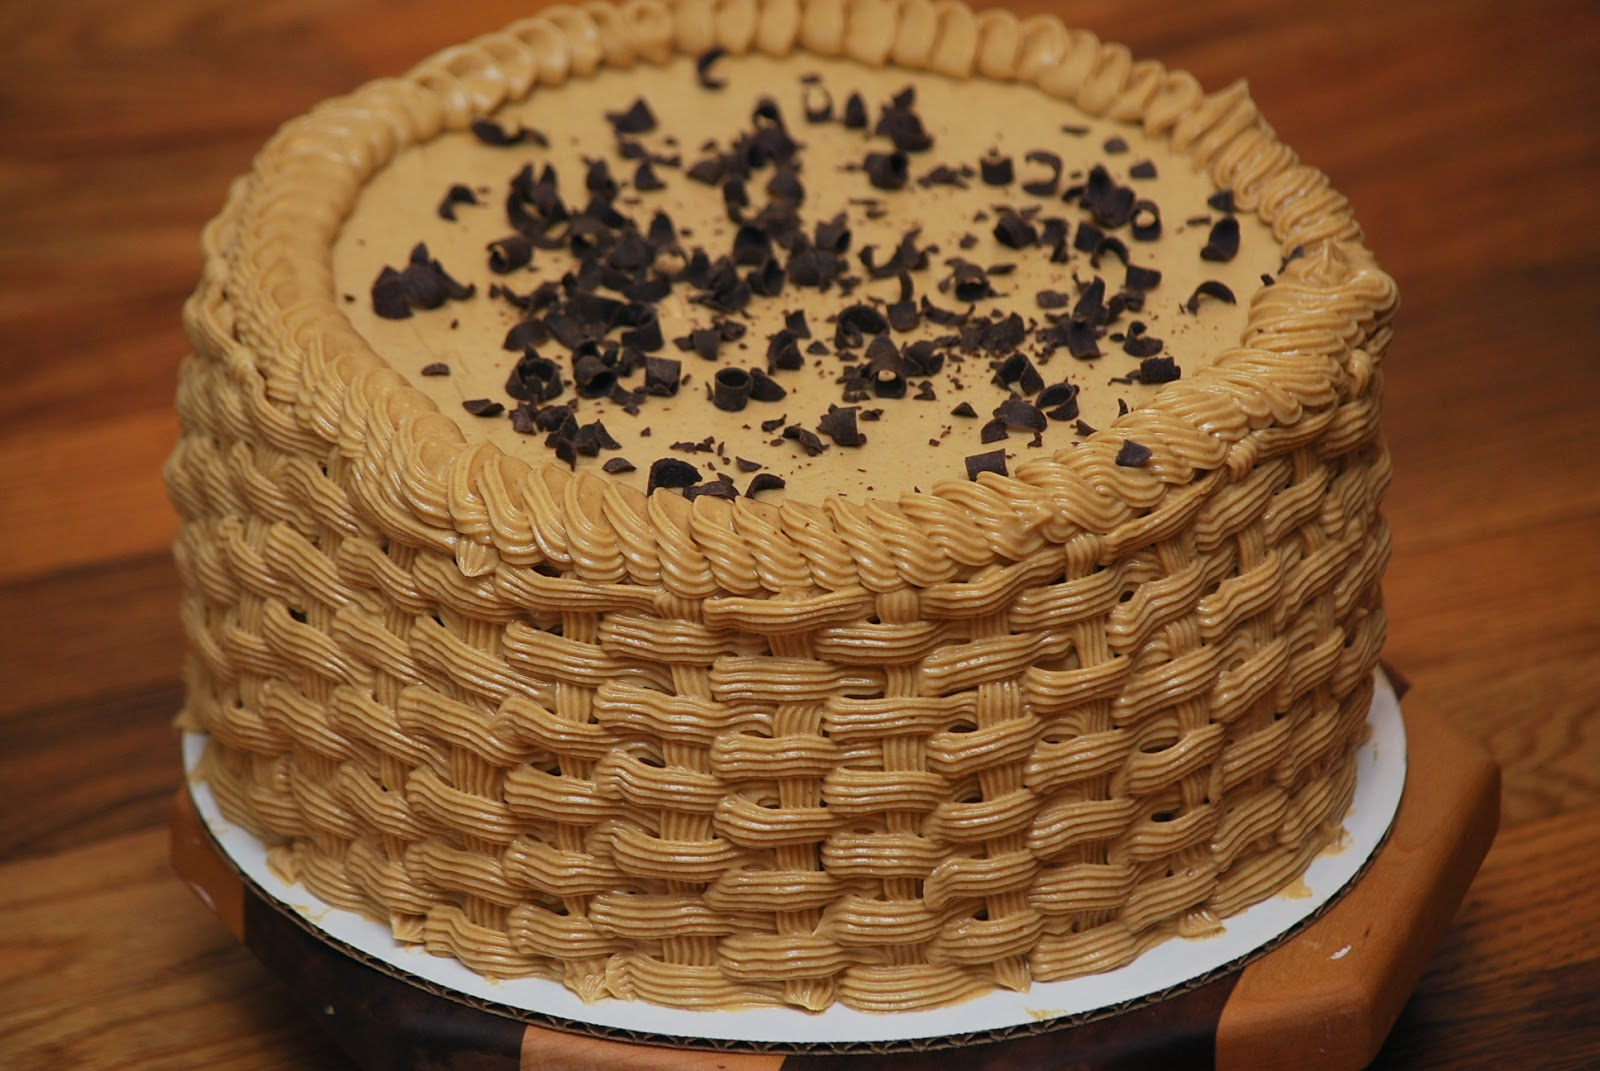 ... in recipes: Banana Chocolate Chip Cake with Peanut Butter Frosting